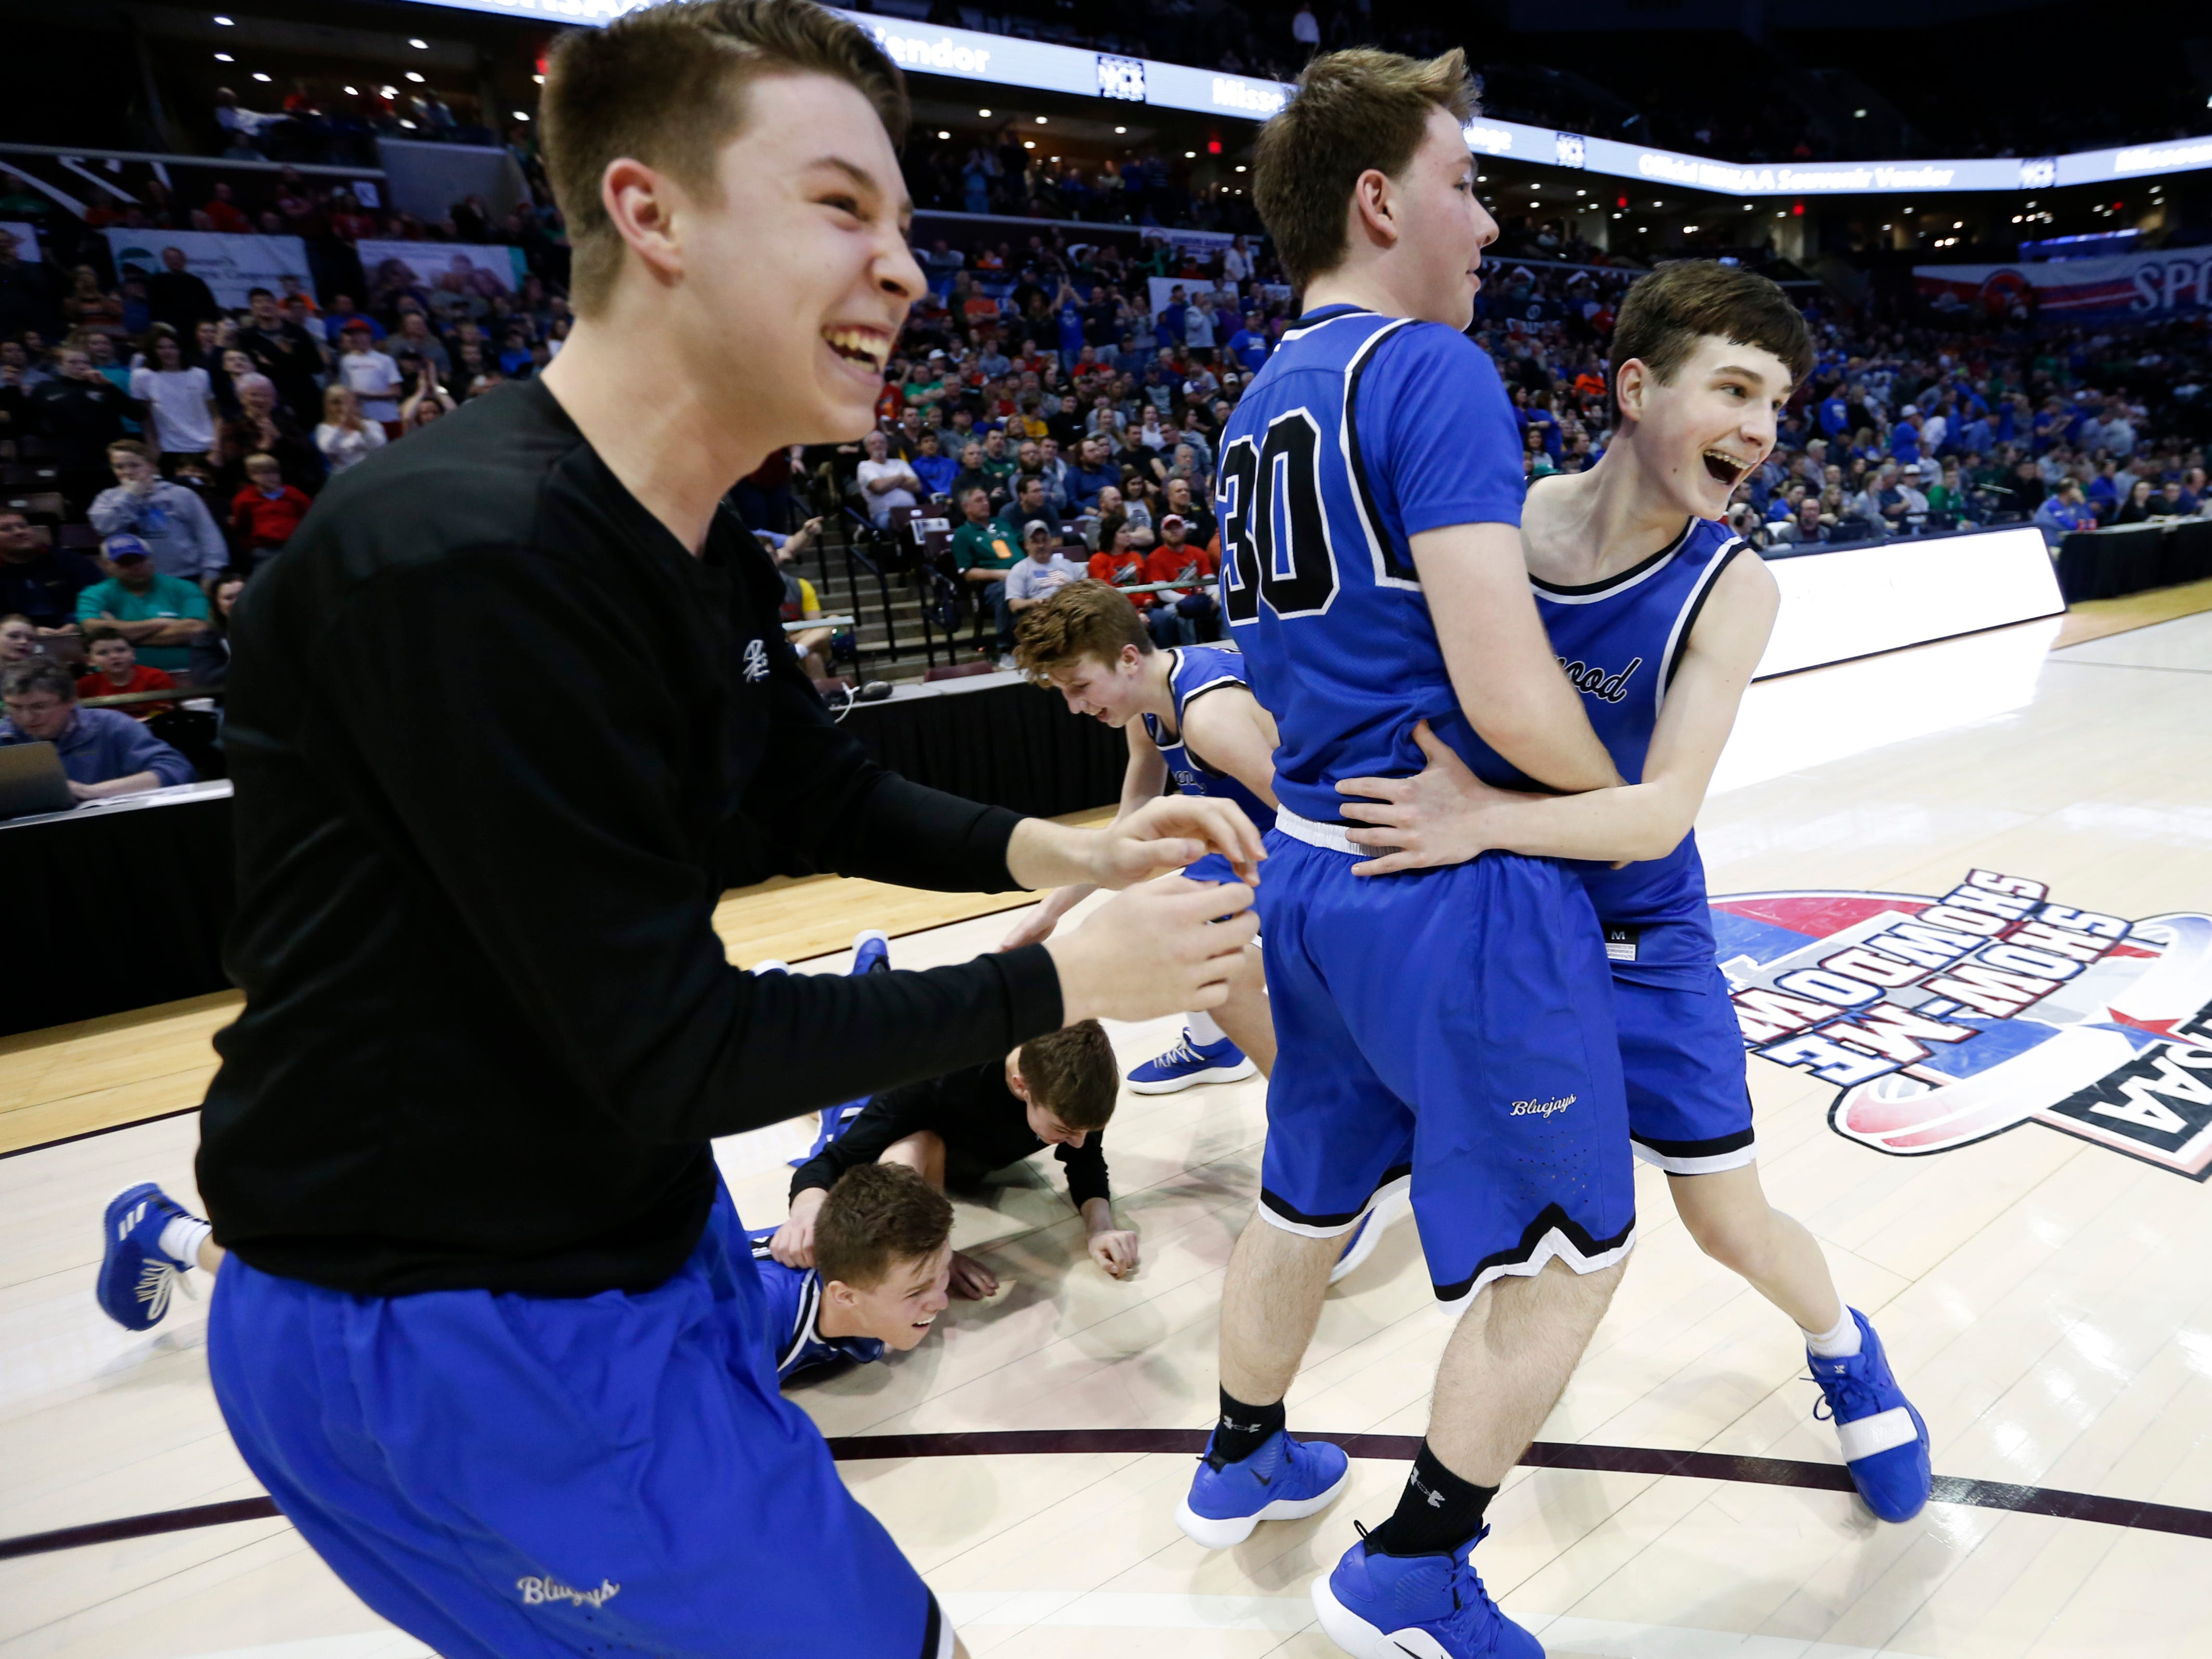 Greenwood Blue Jays Grant Harper (right), Tate Dukewits (center) and Cooper Clark storm the court in celebration after beating the Oran Eagles 55-54 to win the Class 2 state championship game at JQH Arena on Saturday, March 9, 2019.